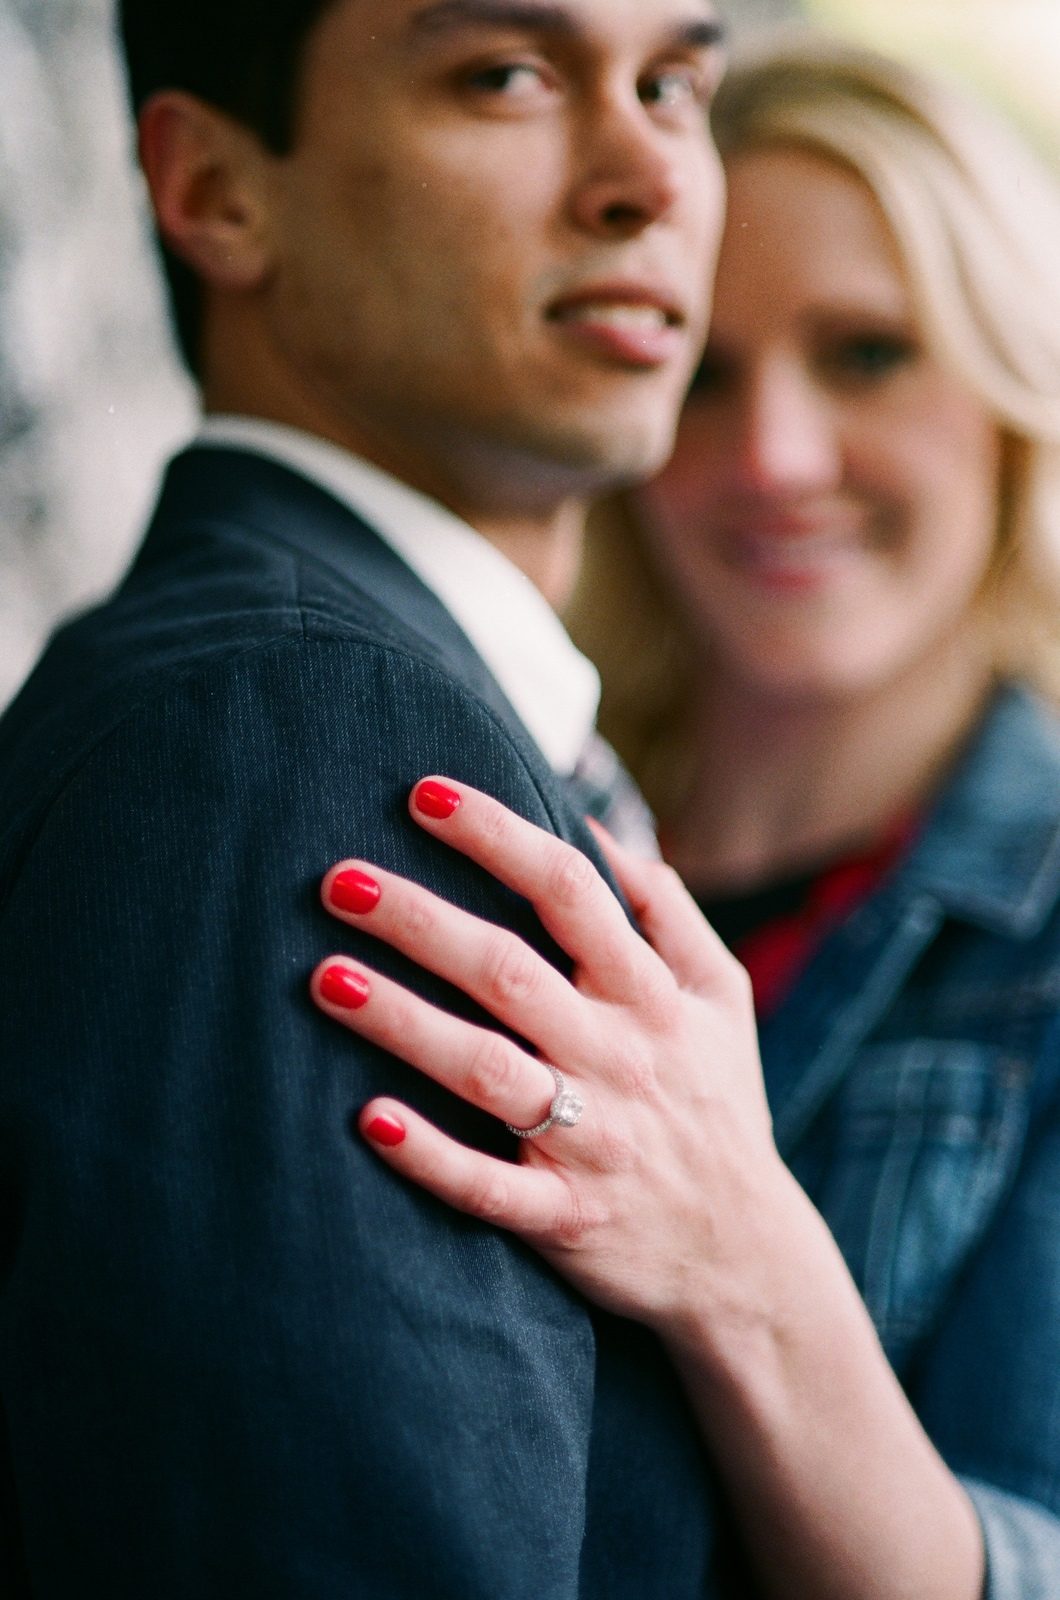 fort tryon park engagement portrait by wendy g photography